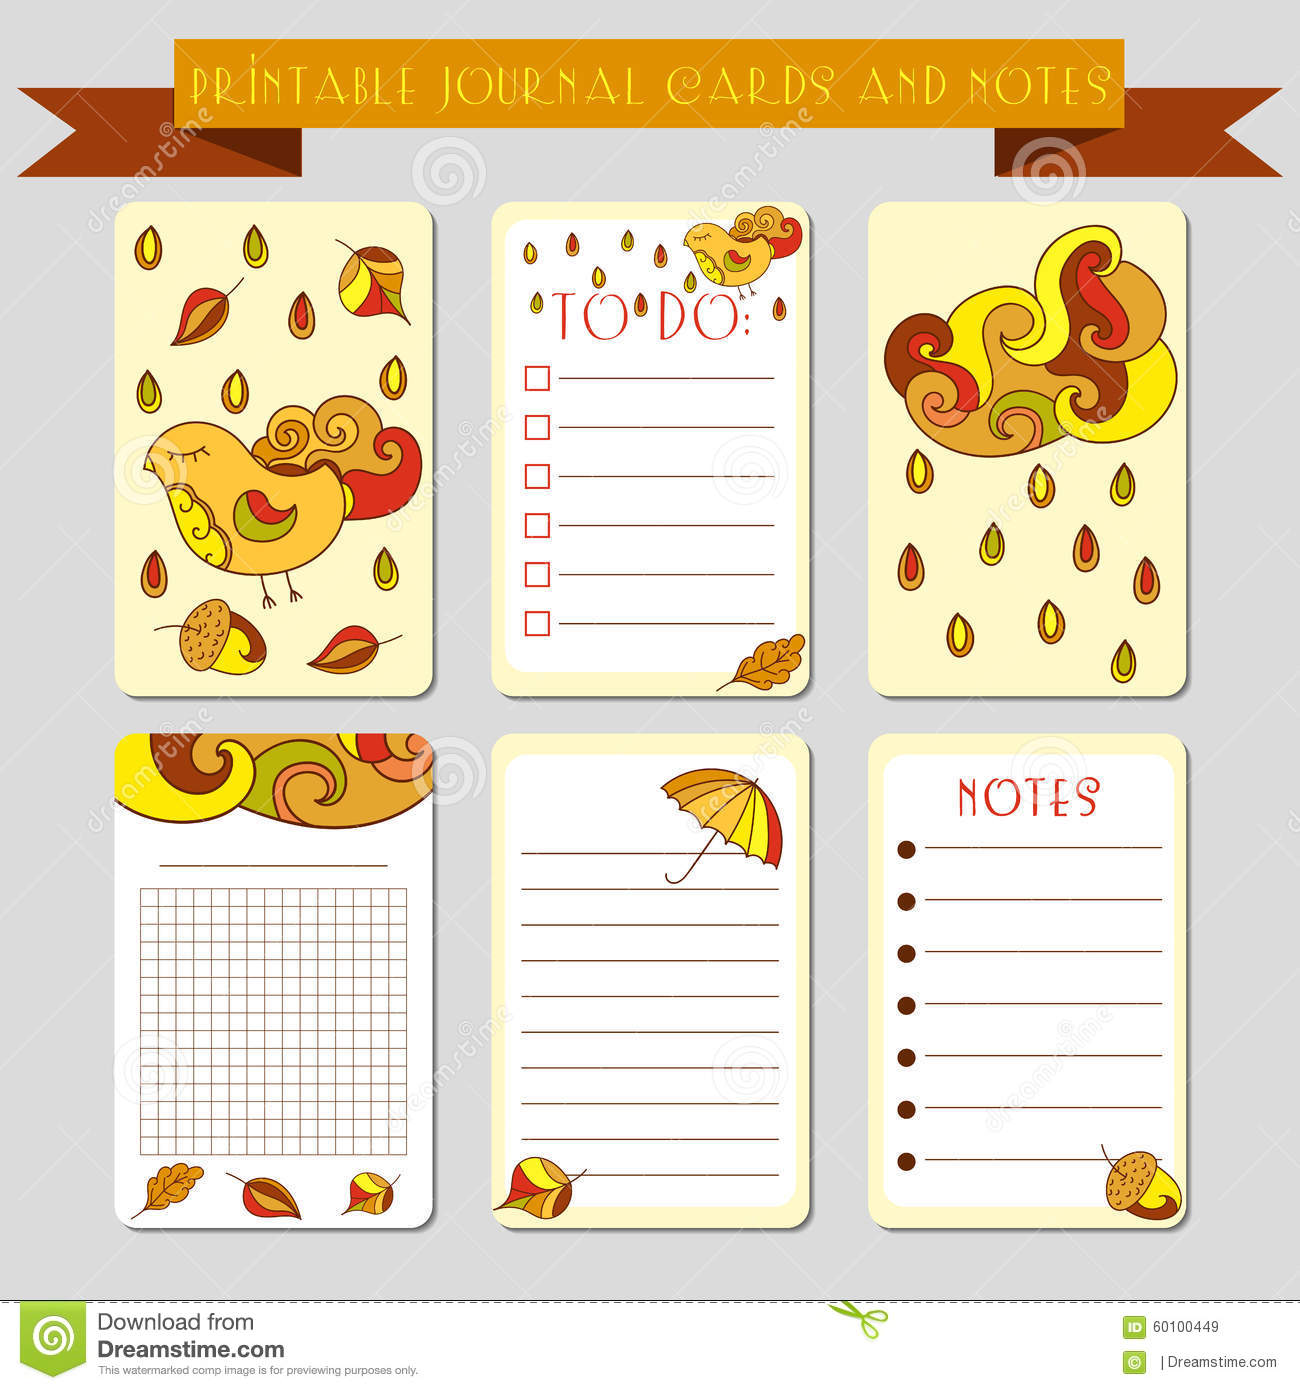 Printable Notes, Journal Cards With Autmun Illustrations